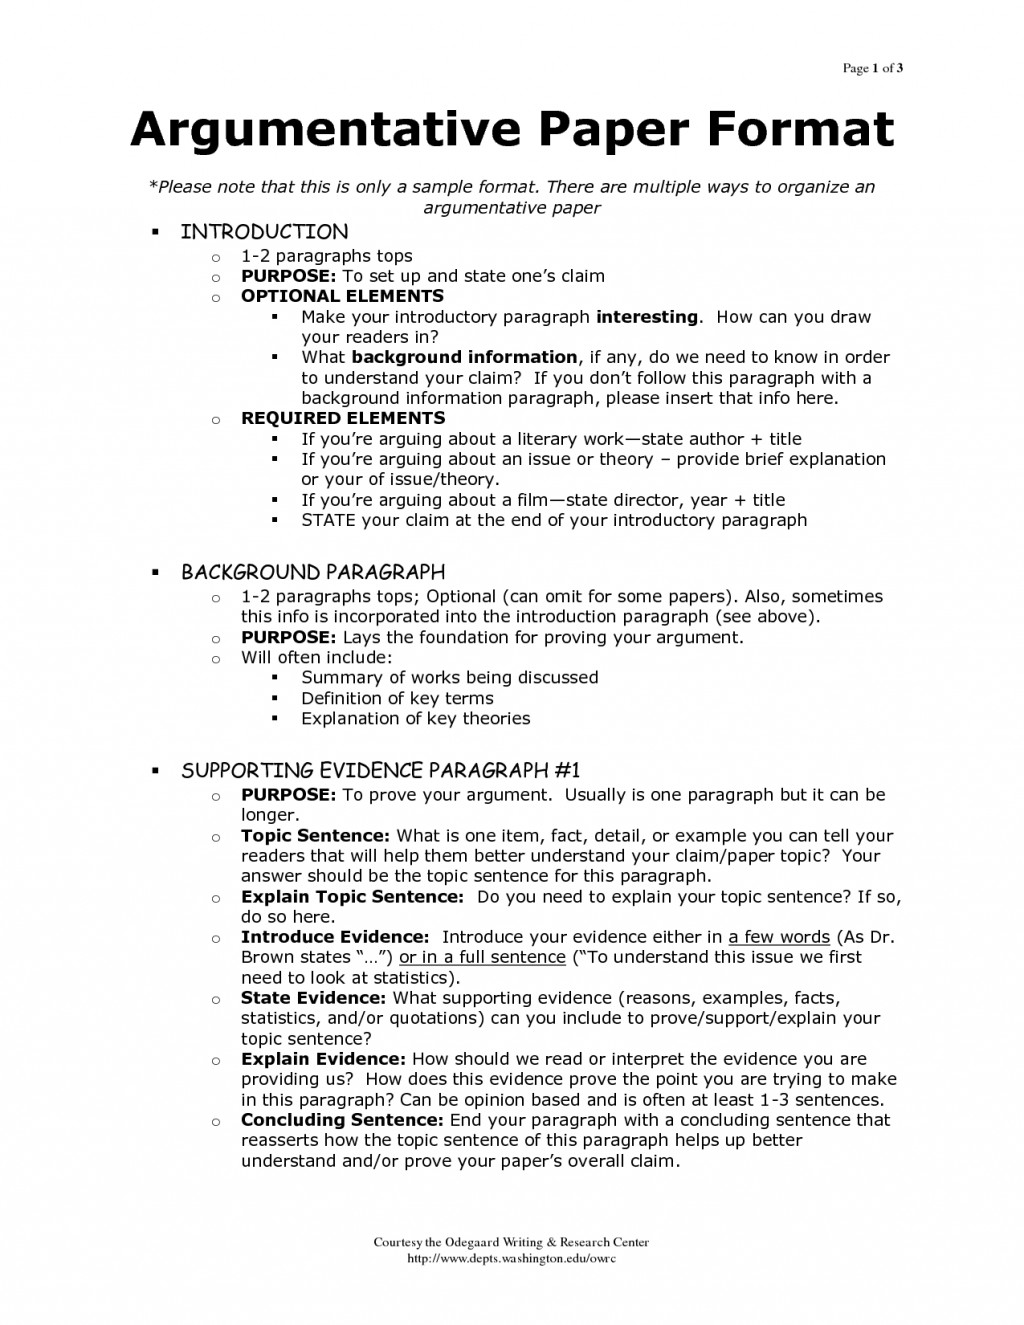 008 How To Write An Argumentative Essay Introduction Unique For Pdf Example Large